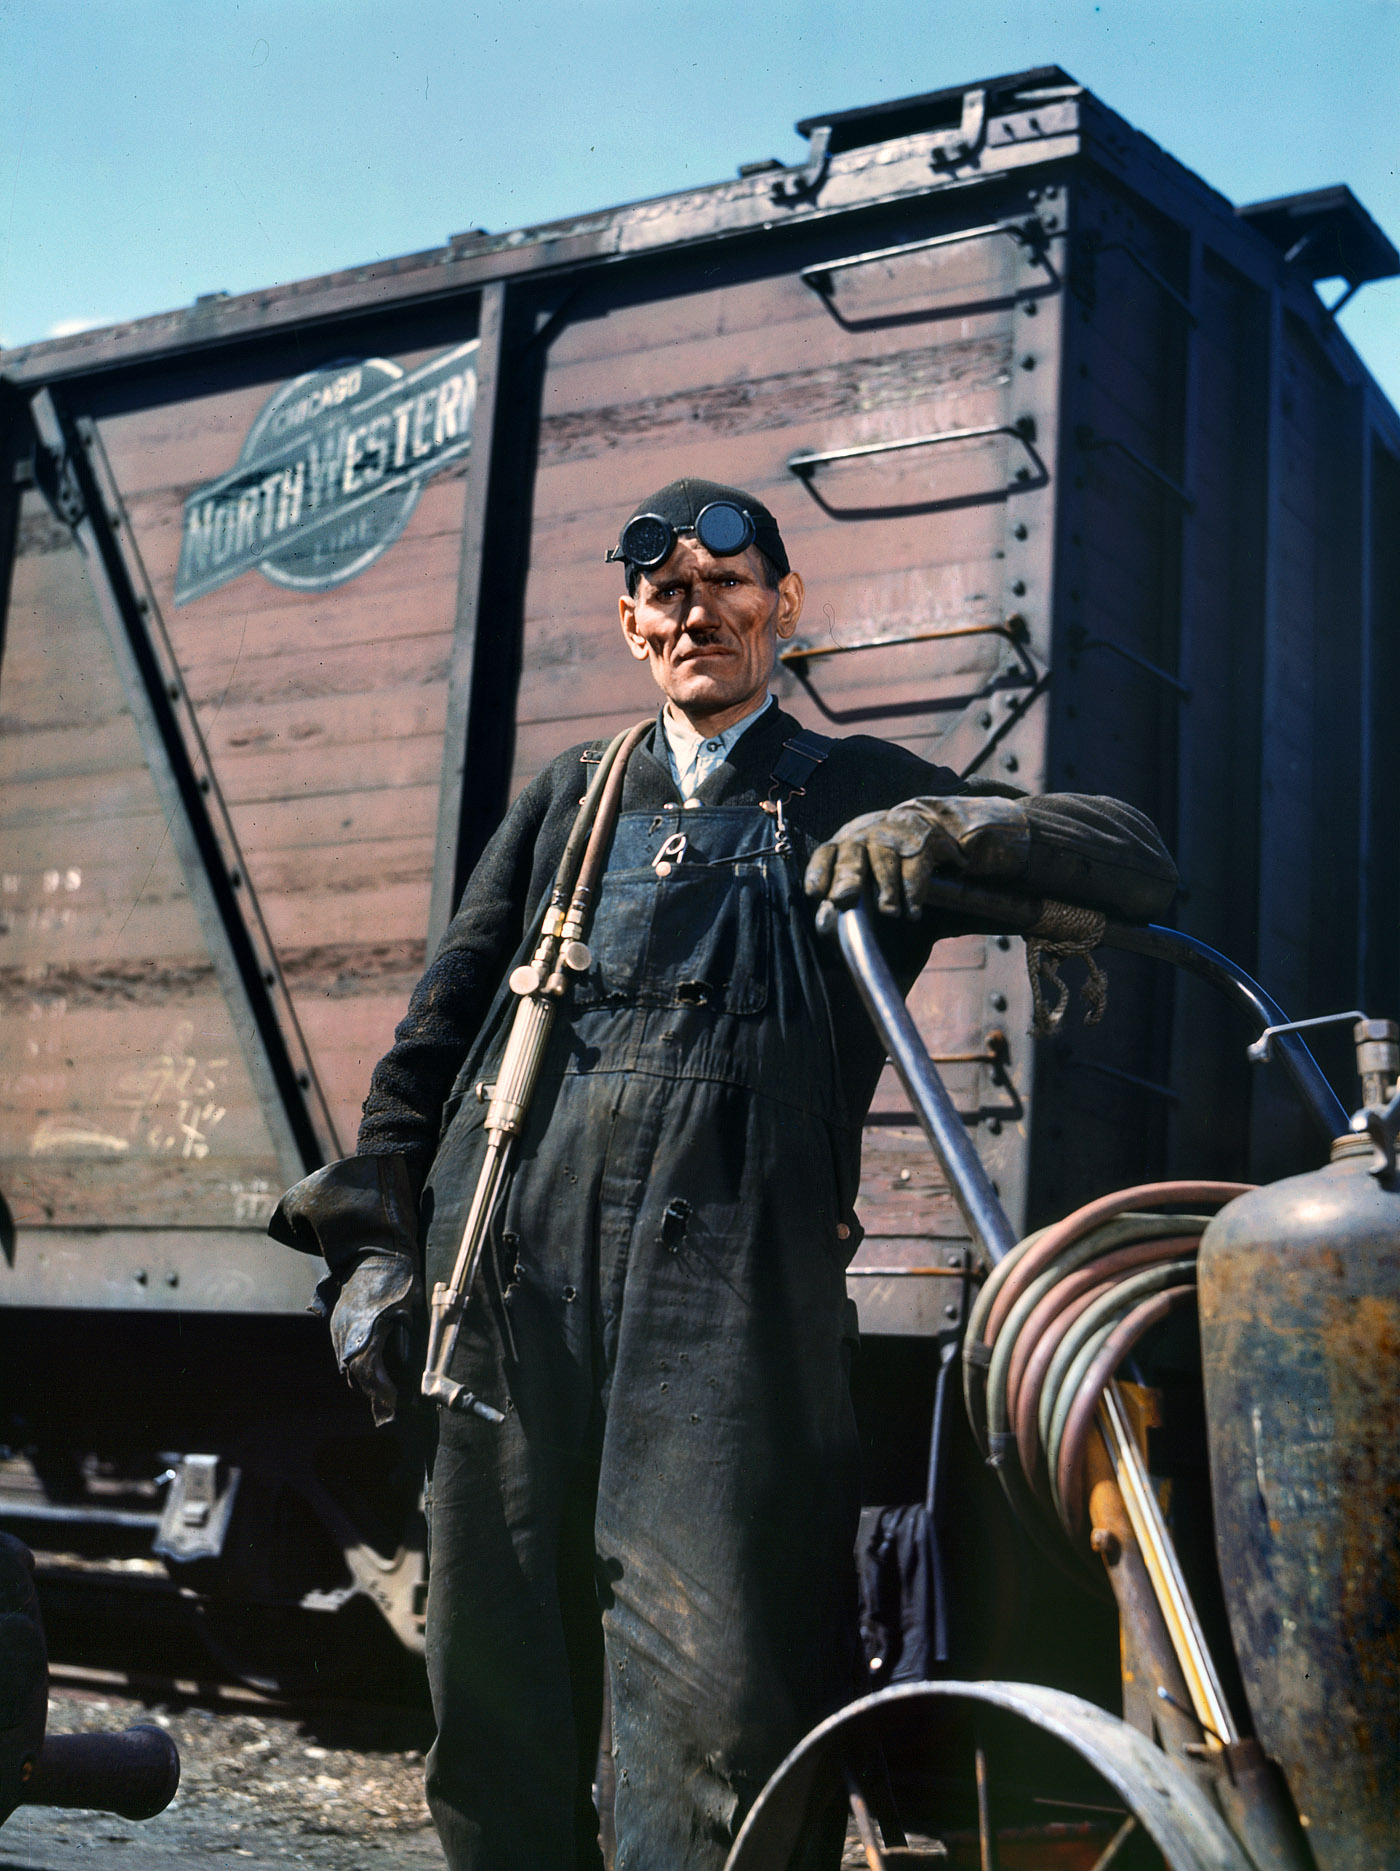 CNW Railroad Welder via Shorpy.com